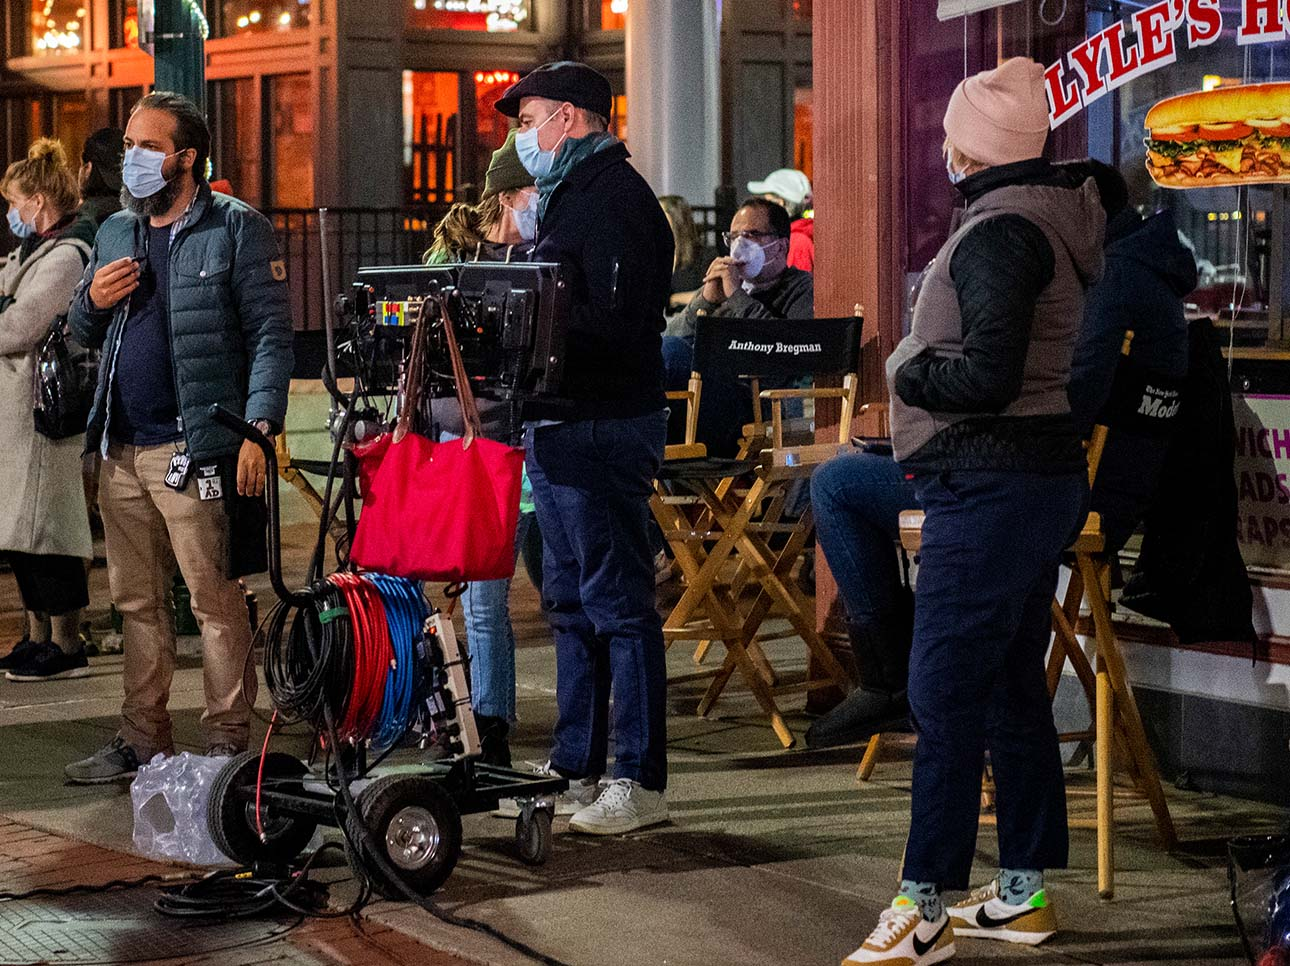 Crew from Modern Love on set in Capital District